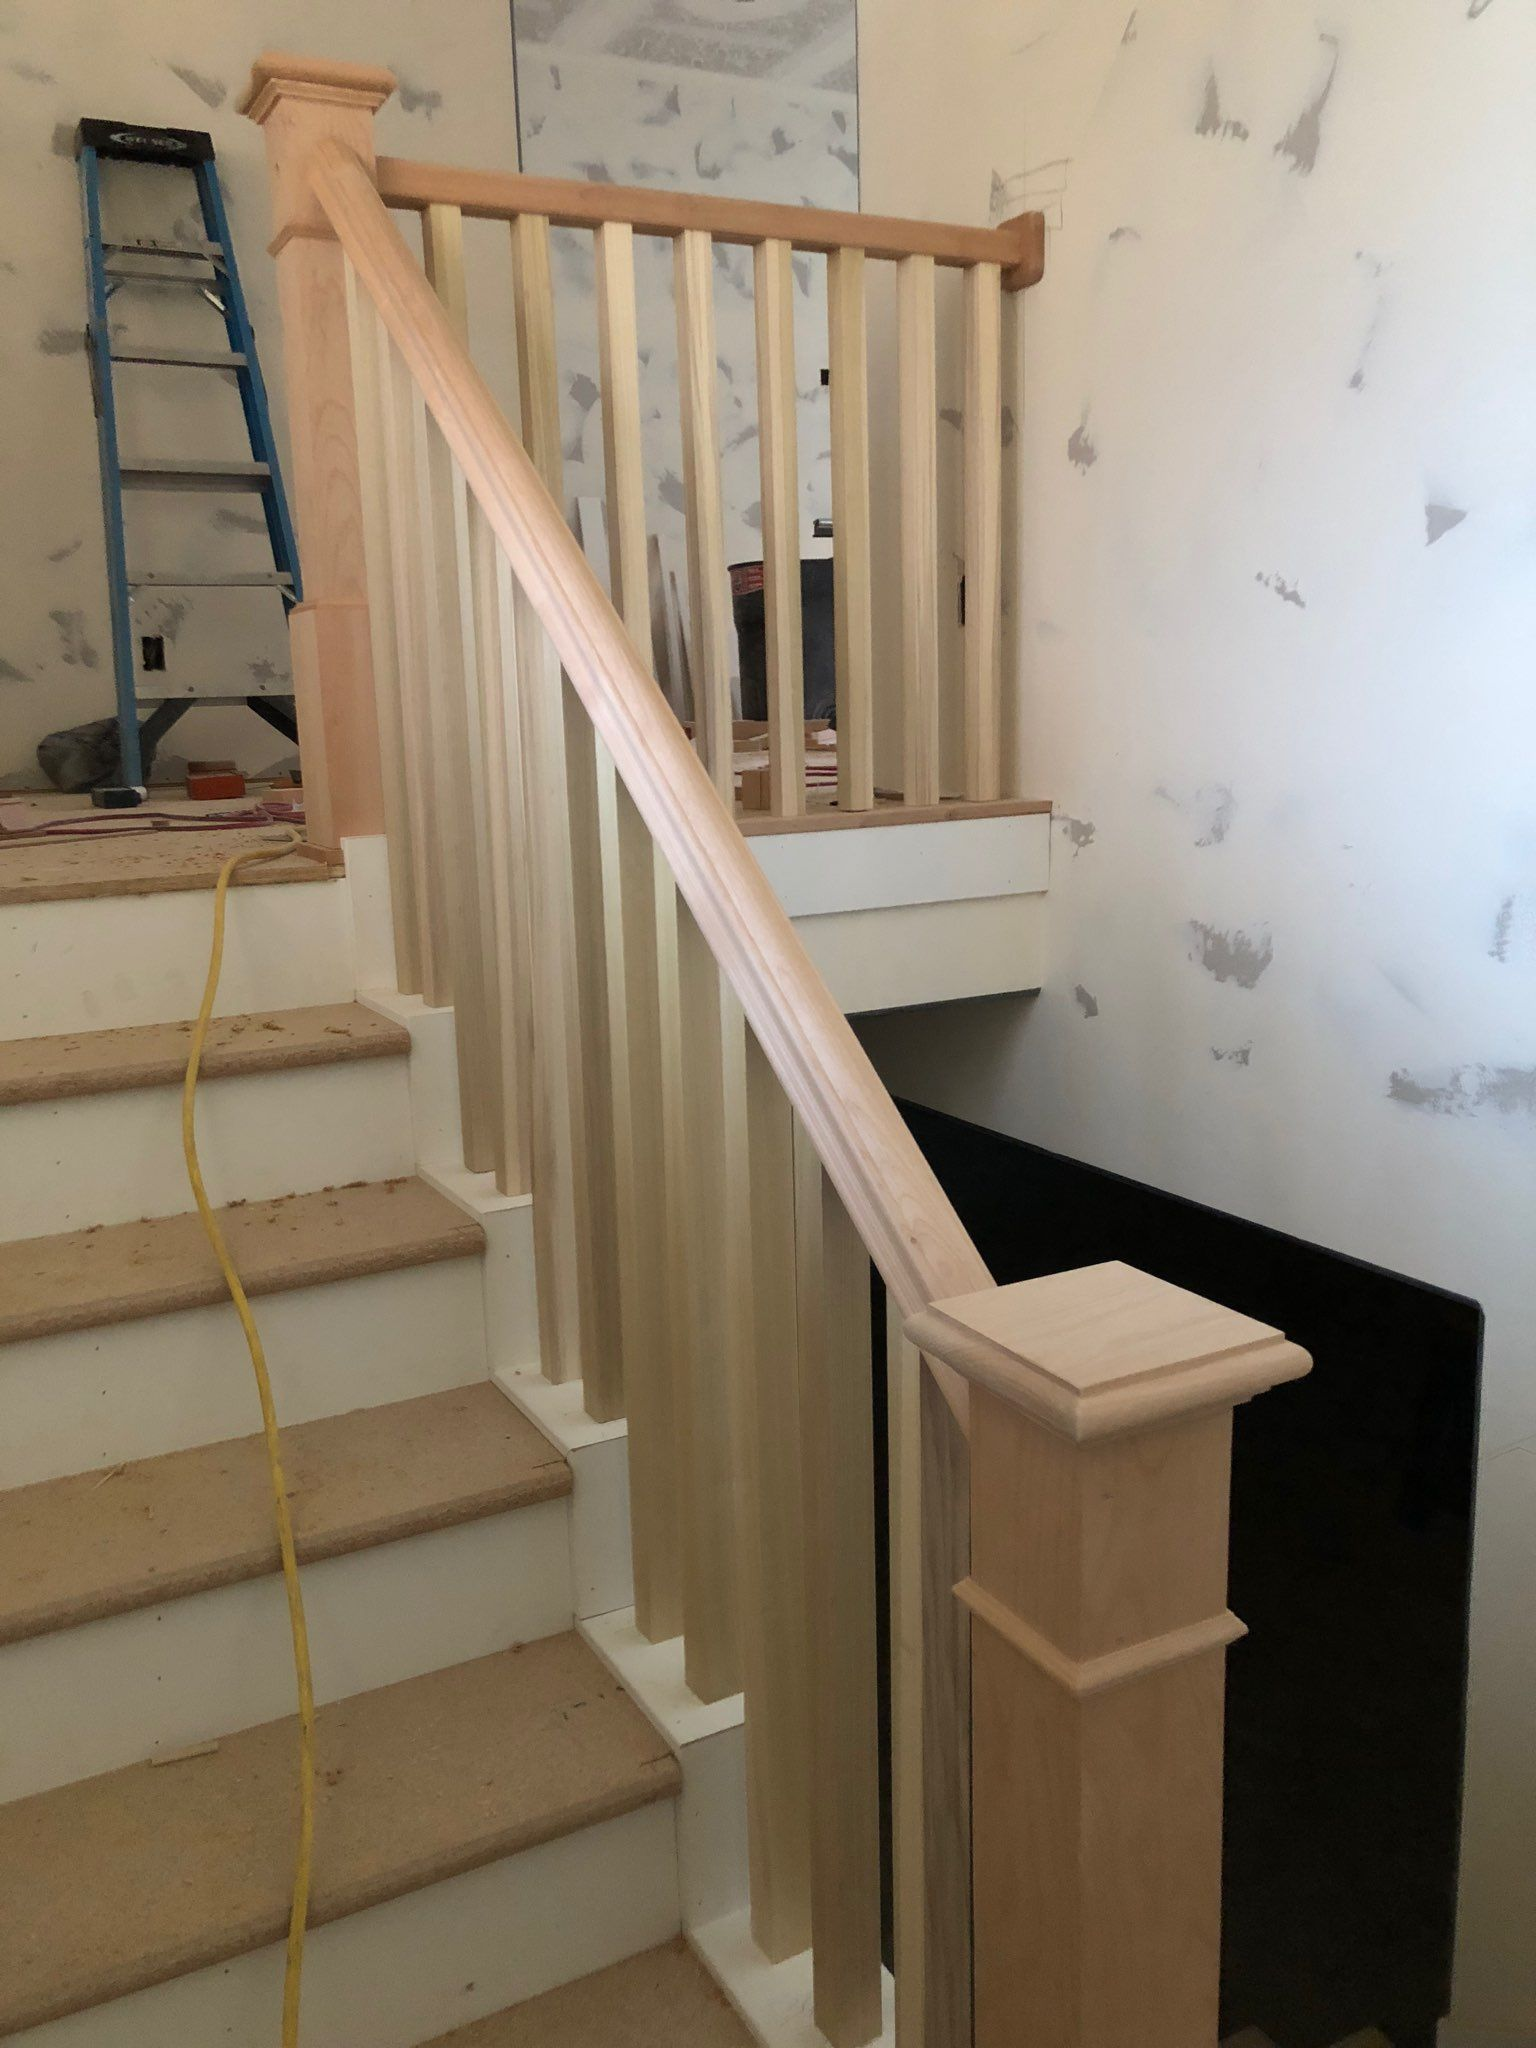 Stair Tread End Caps   Carpeted Stairs With Wood End Caps   Stair Railing   Waterfall   Diy   Capped   Step